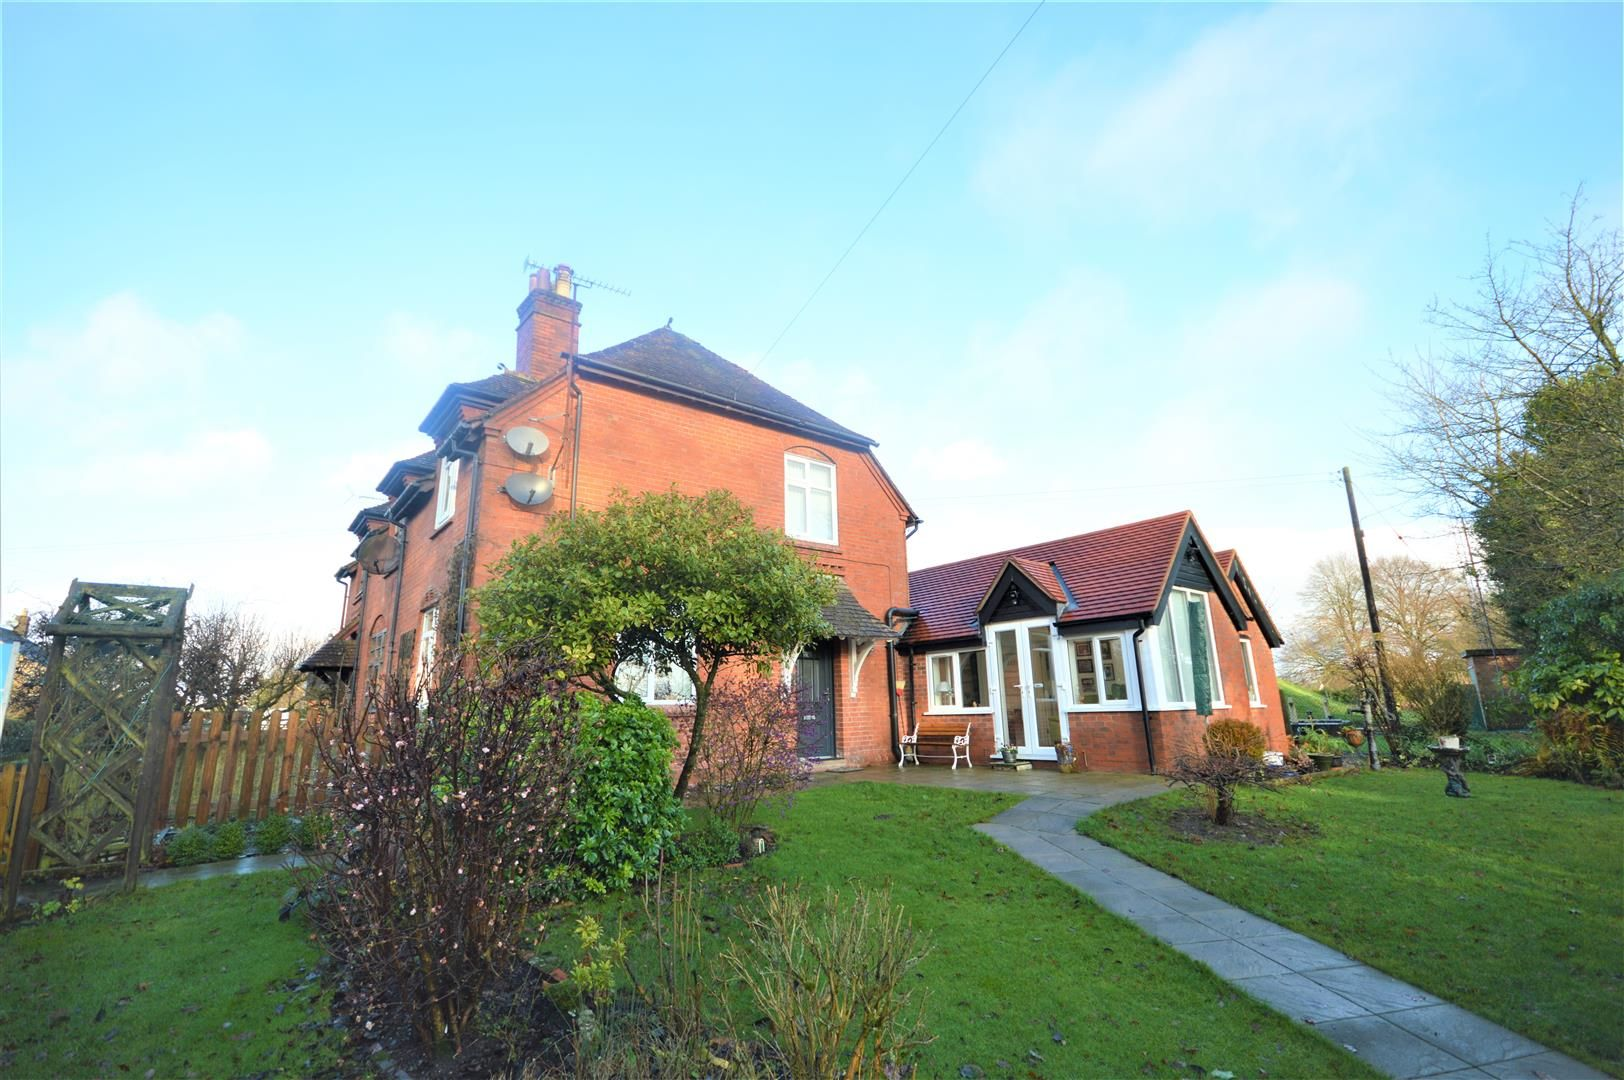 4 bed semi-detached for sale in Leysters 1